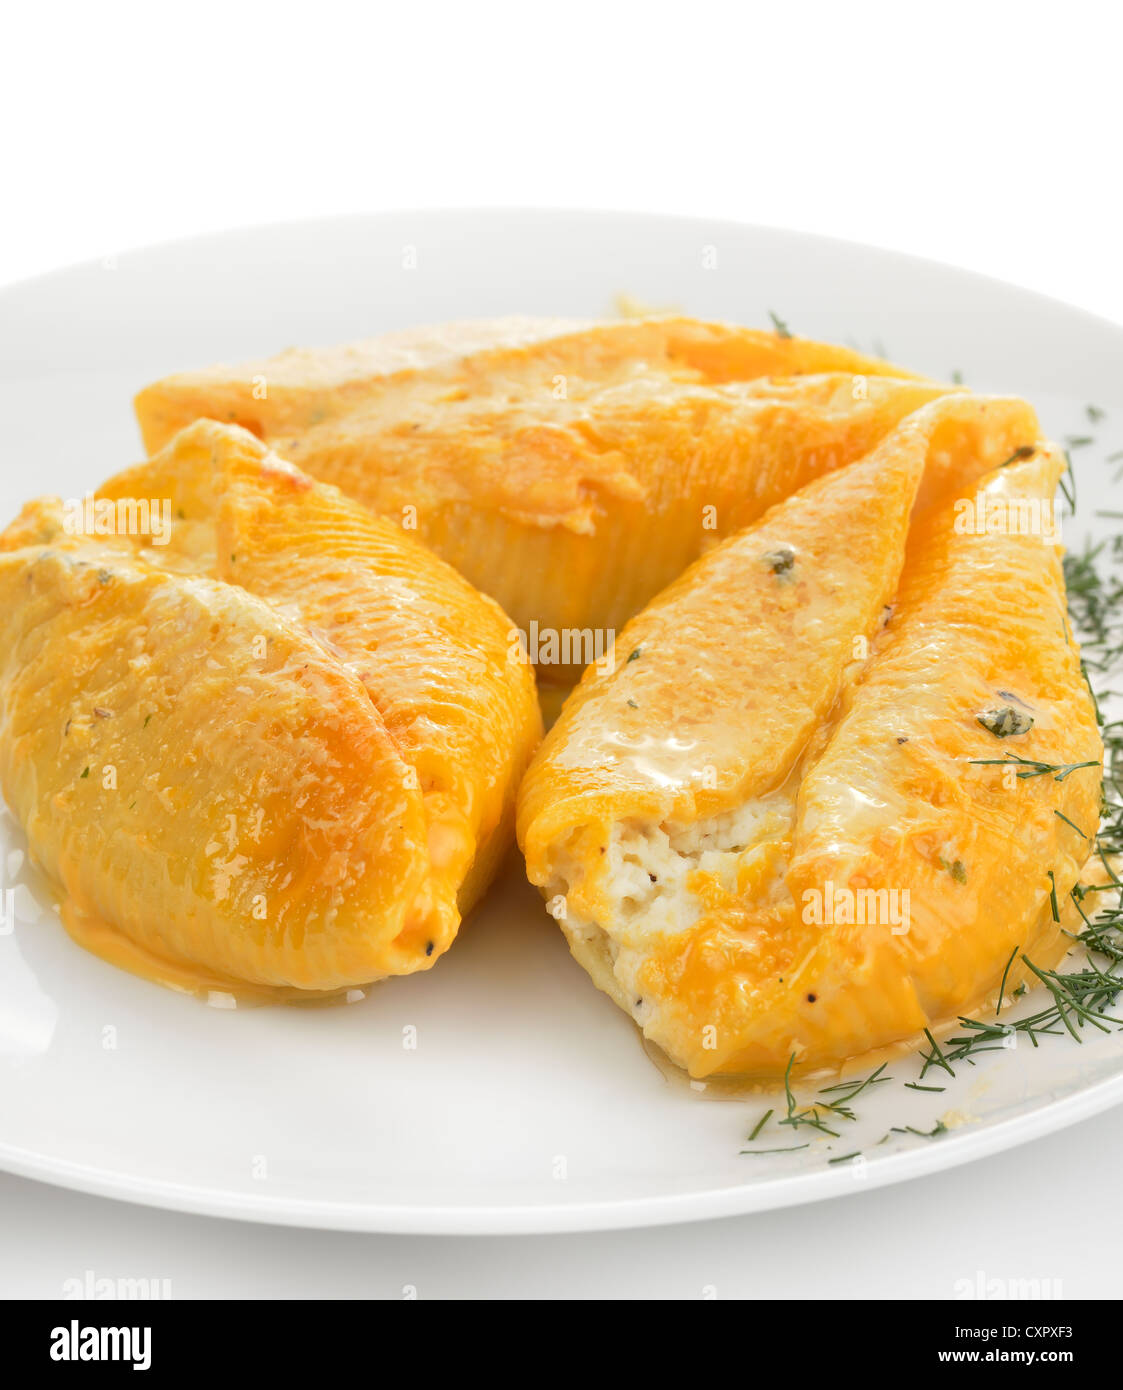 Large Pasta Shells Filled With Ricotta, Mozzarella And Parmesan Cheese. - Stock Image